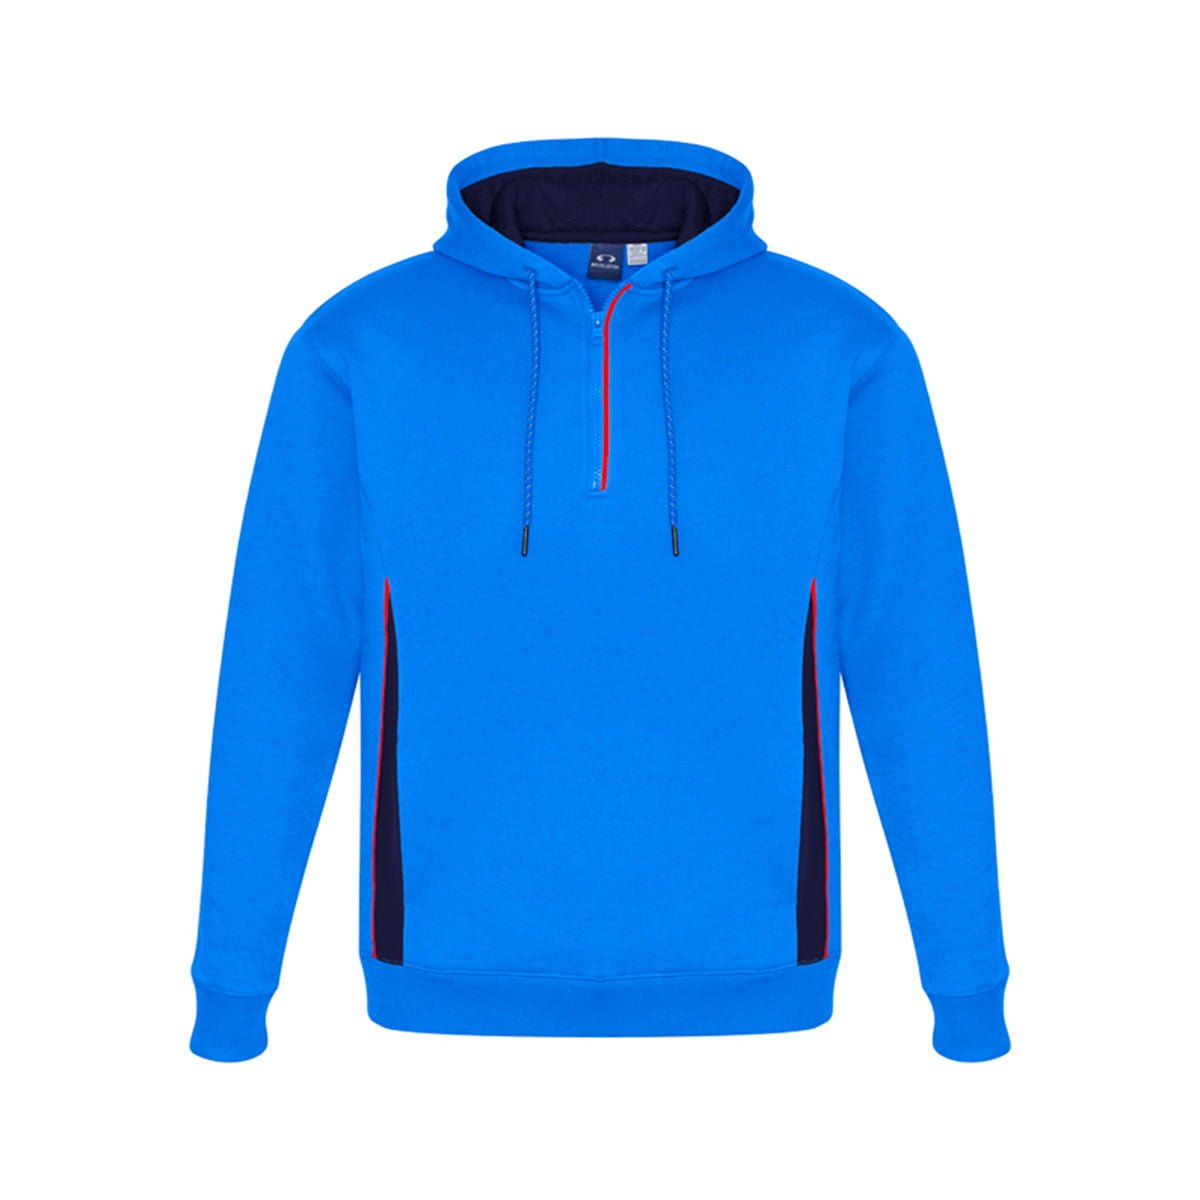 Adults Renegade Hoodie-Royal / Navy / Fluoro Orange